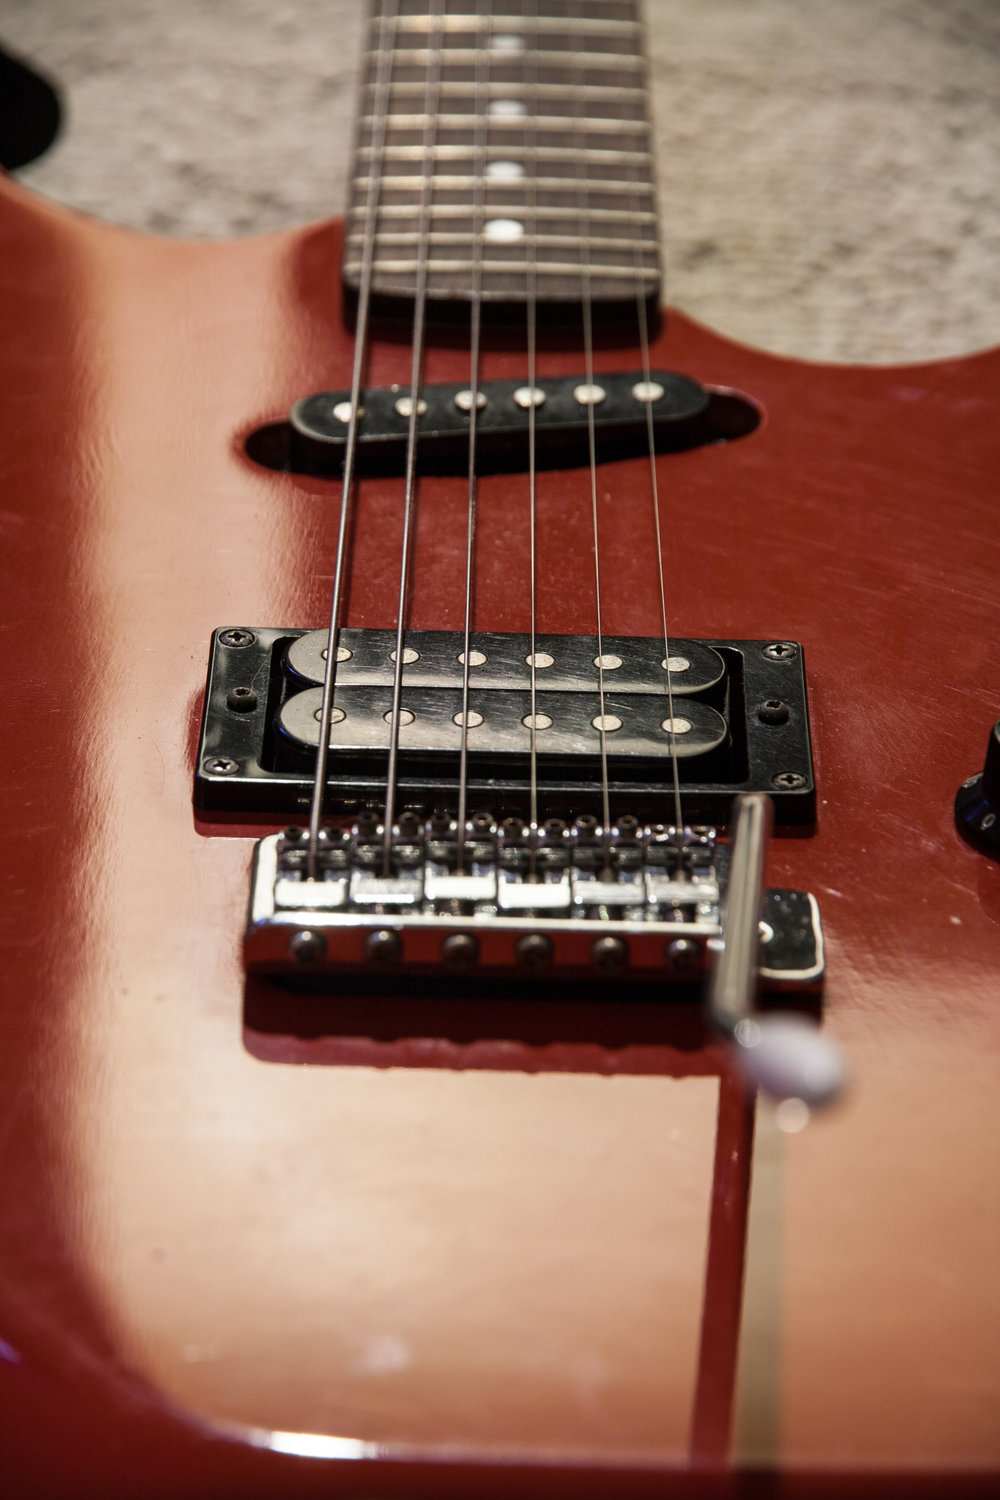 I was able to source a whammy bar, this required a much larger diameter than the usual strat trem arms.